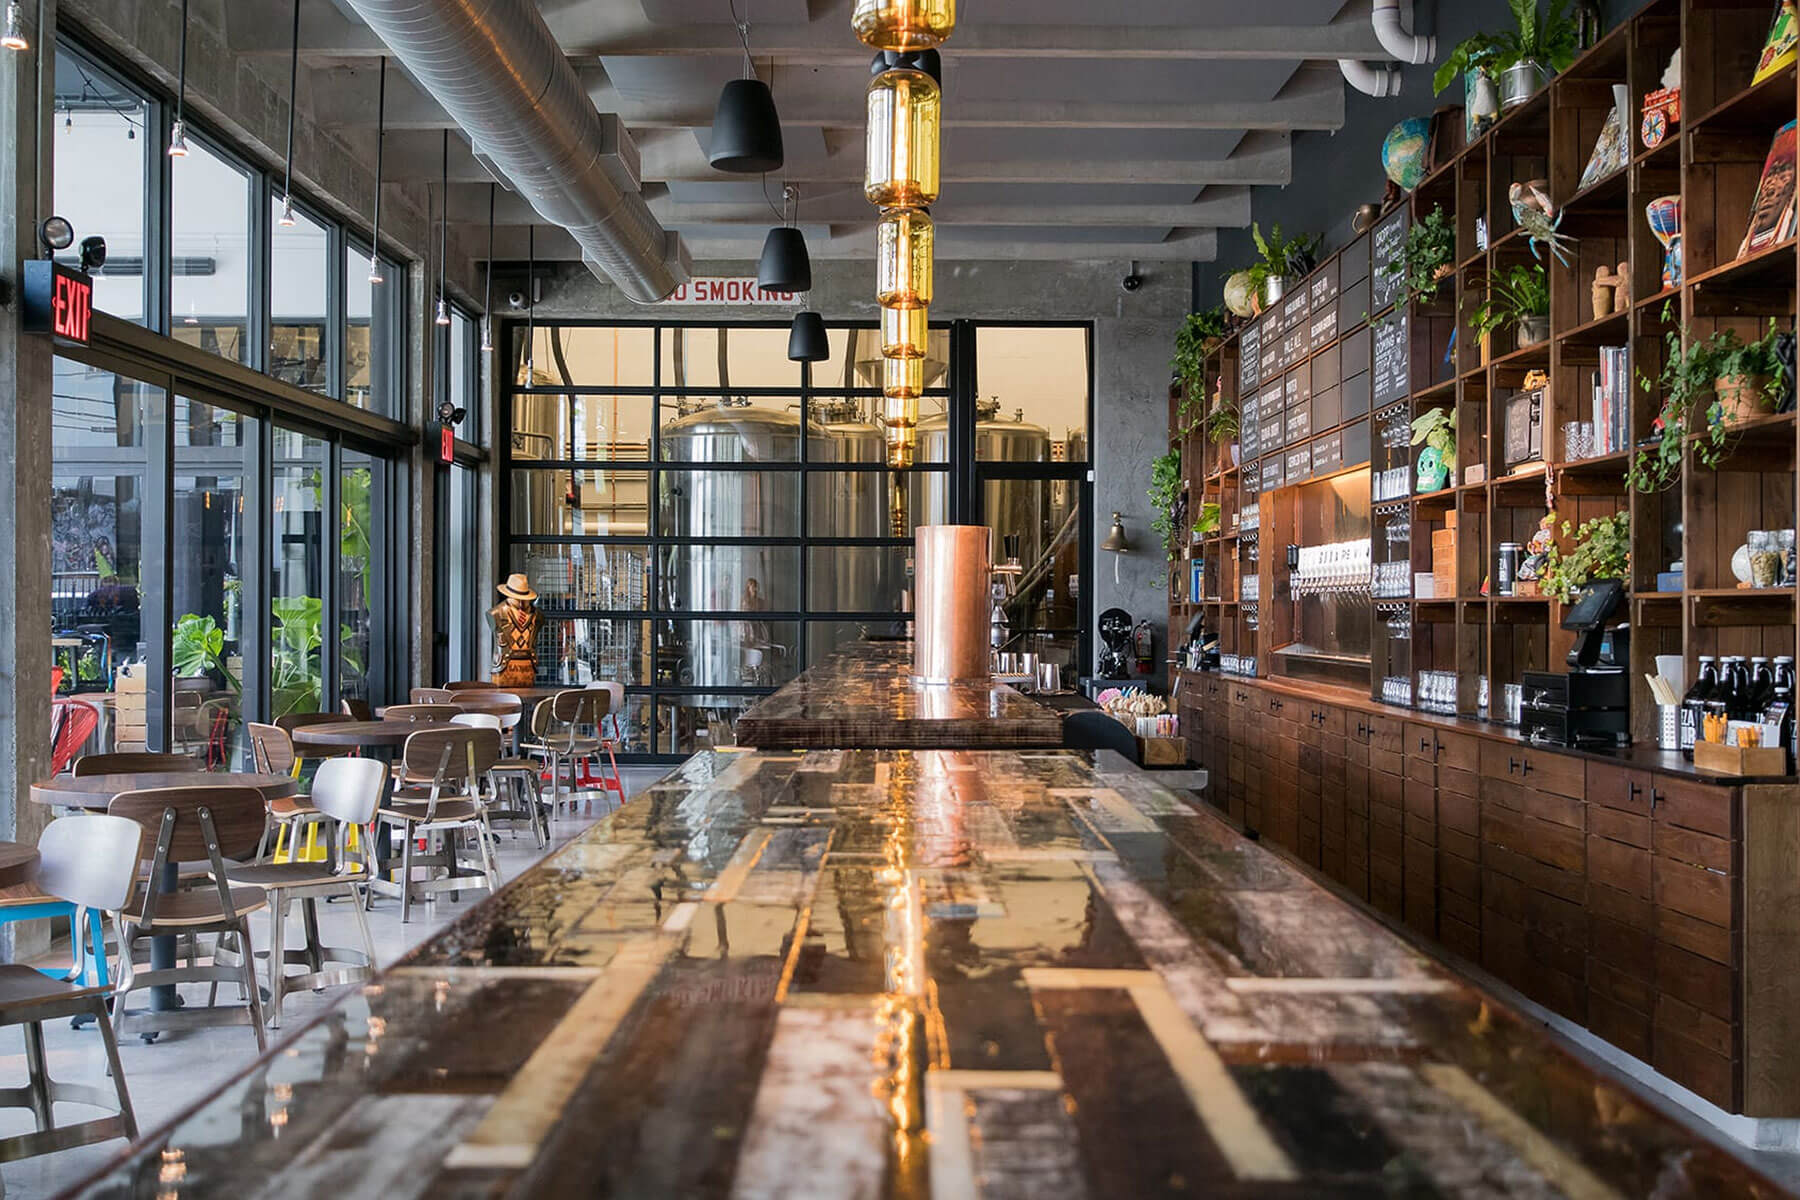 Inside the taproom of Veza Sur Brewing Co in the Wynwood neighborhood of Miami, Florida